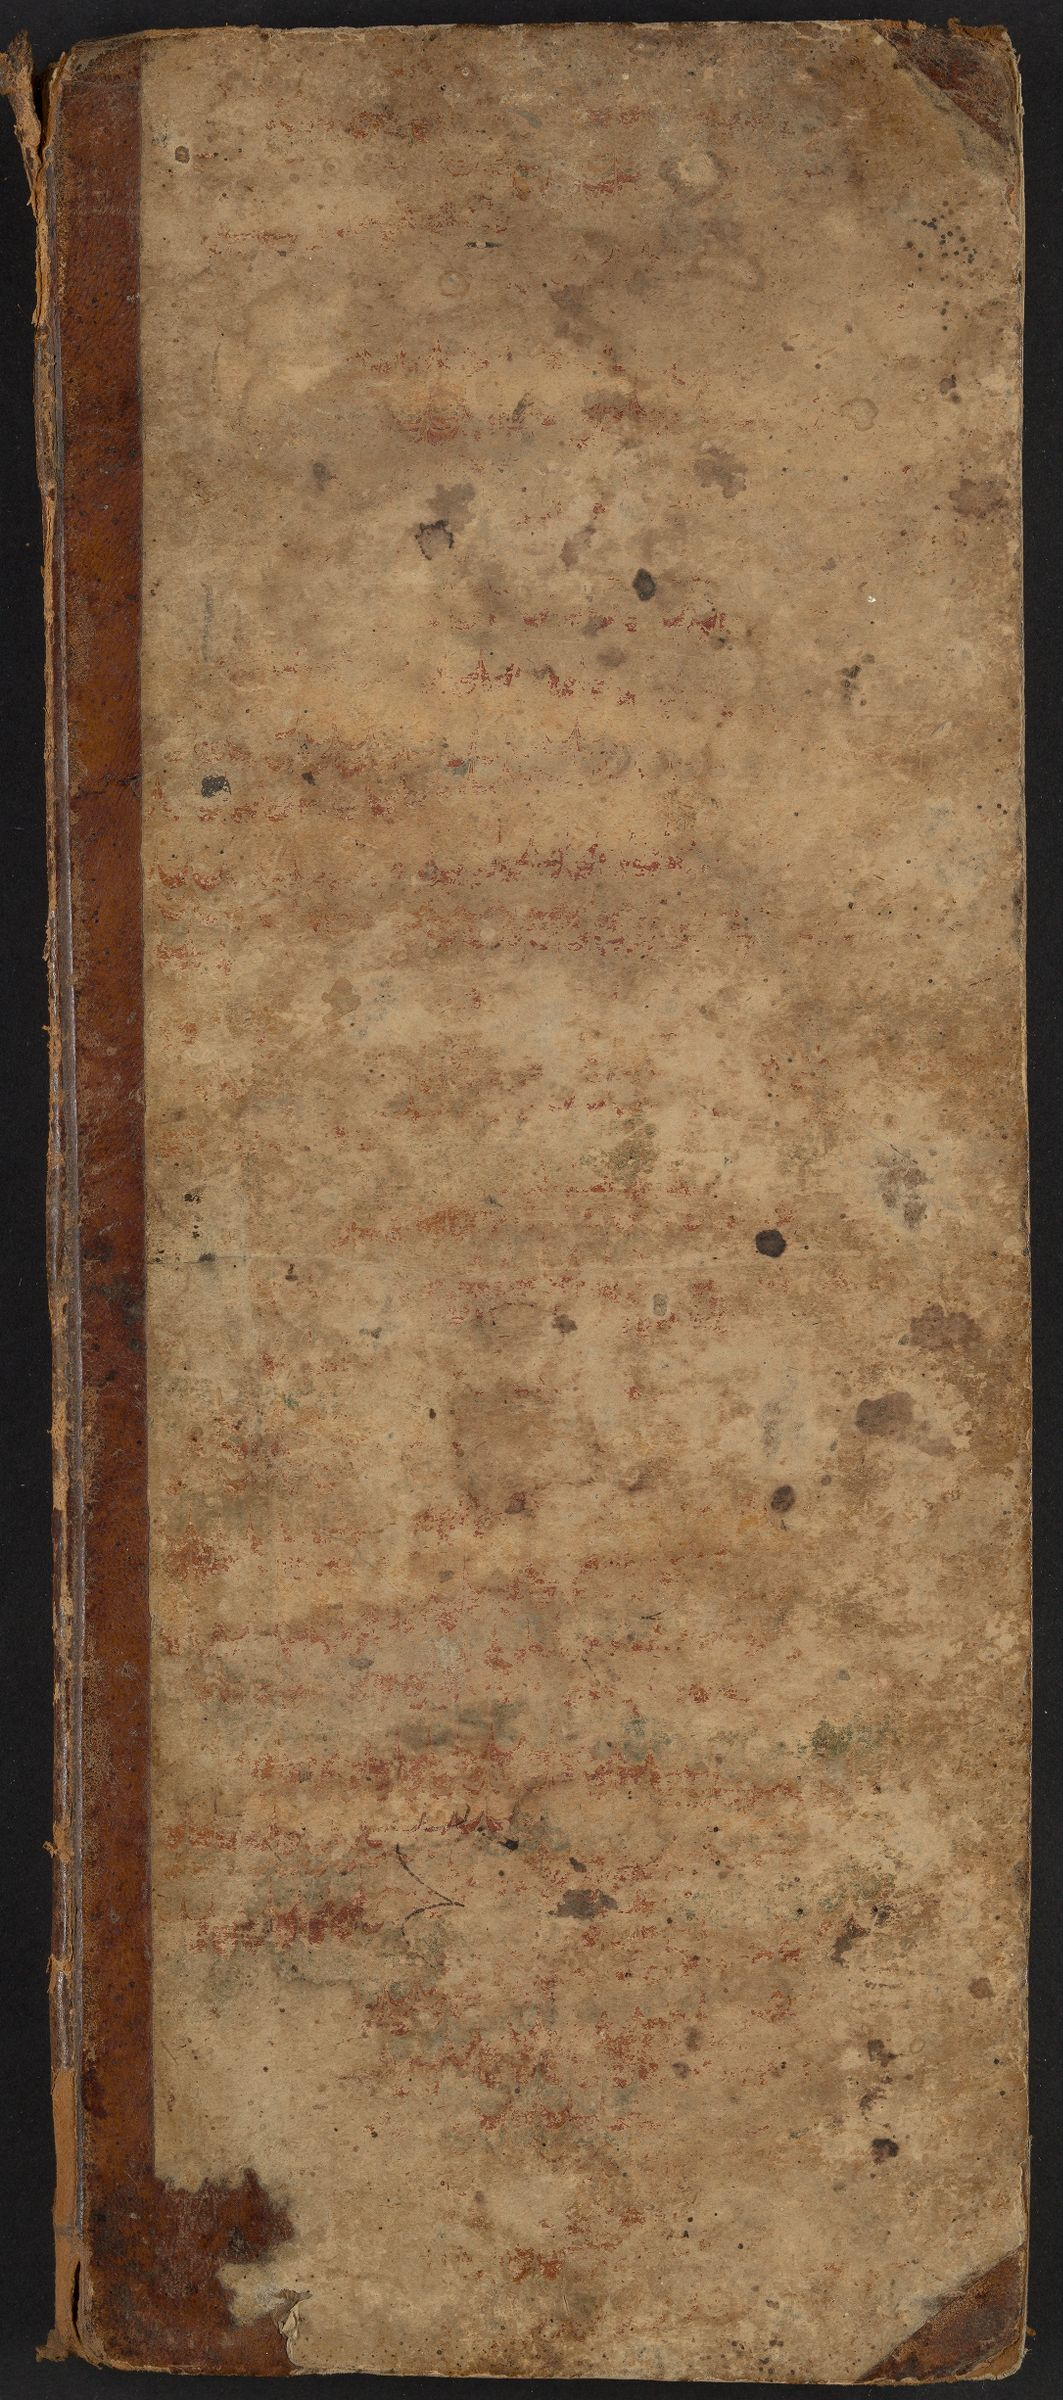 Account books of Thomas Cradock, 1786-1818 (inclusive)